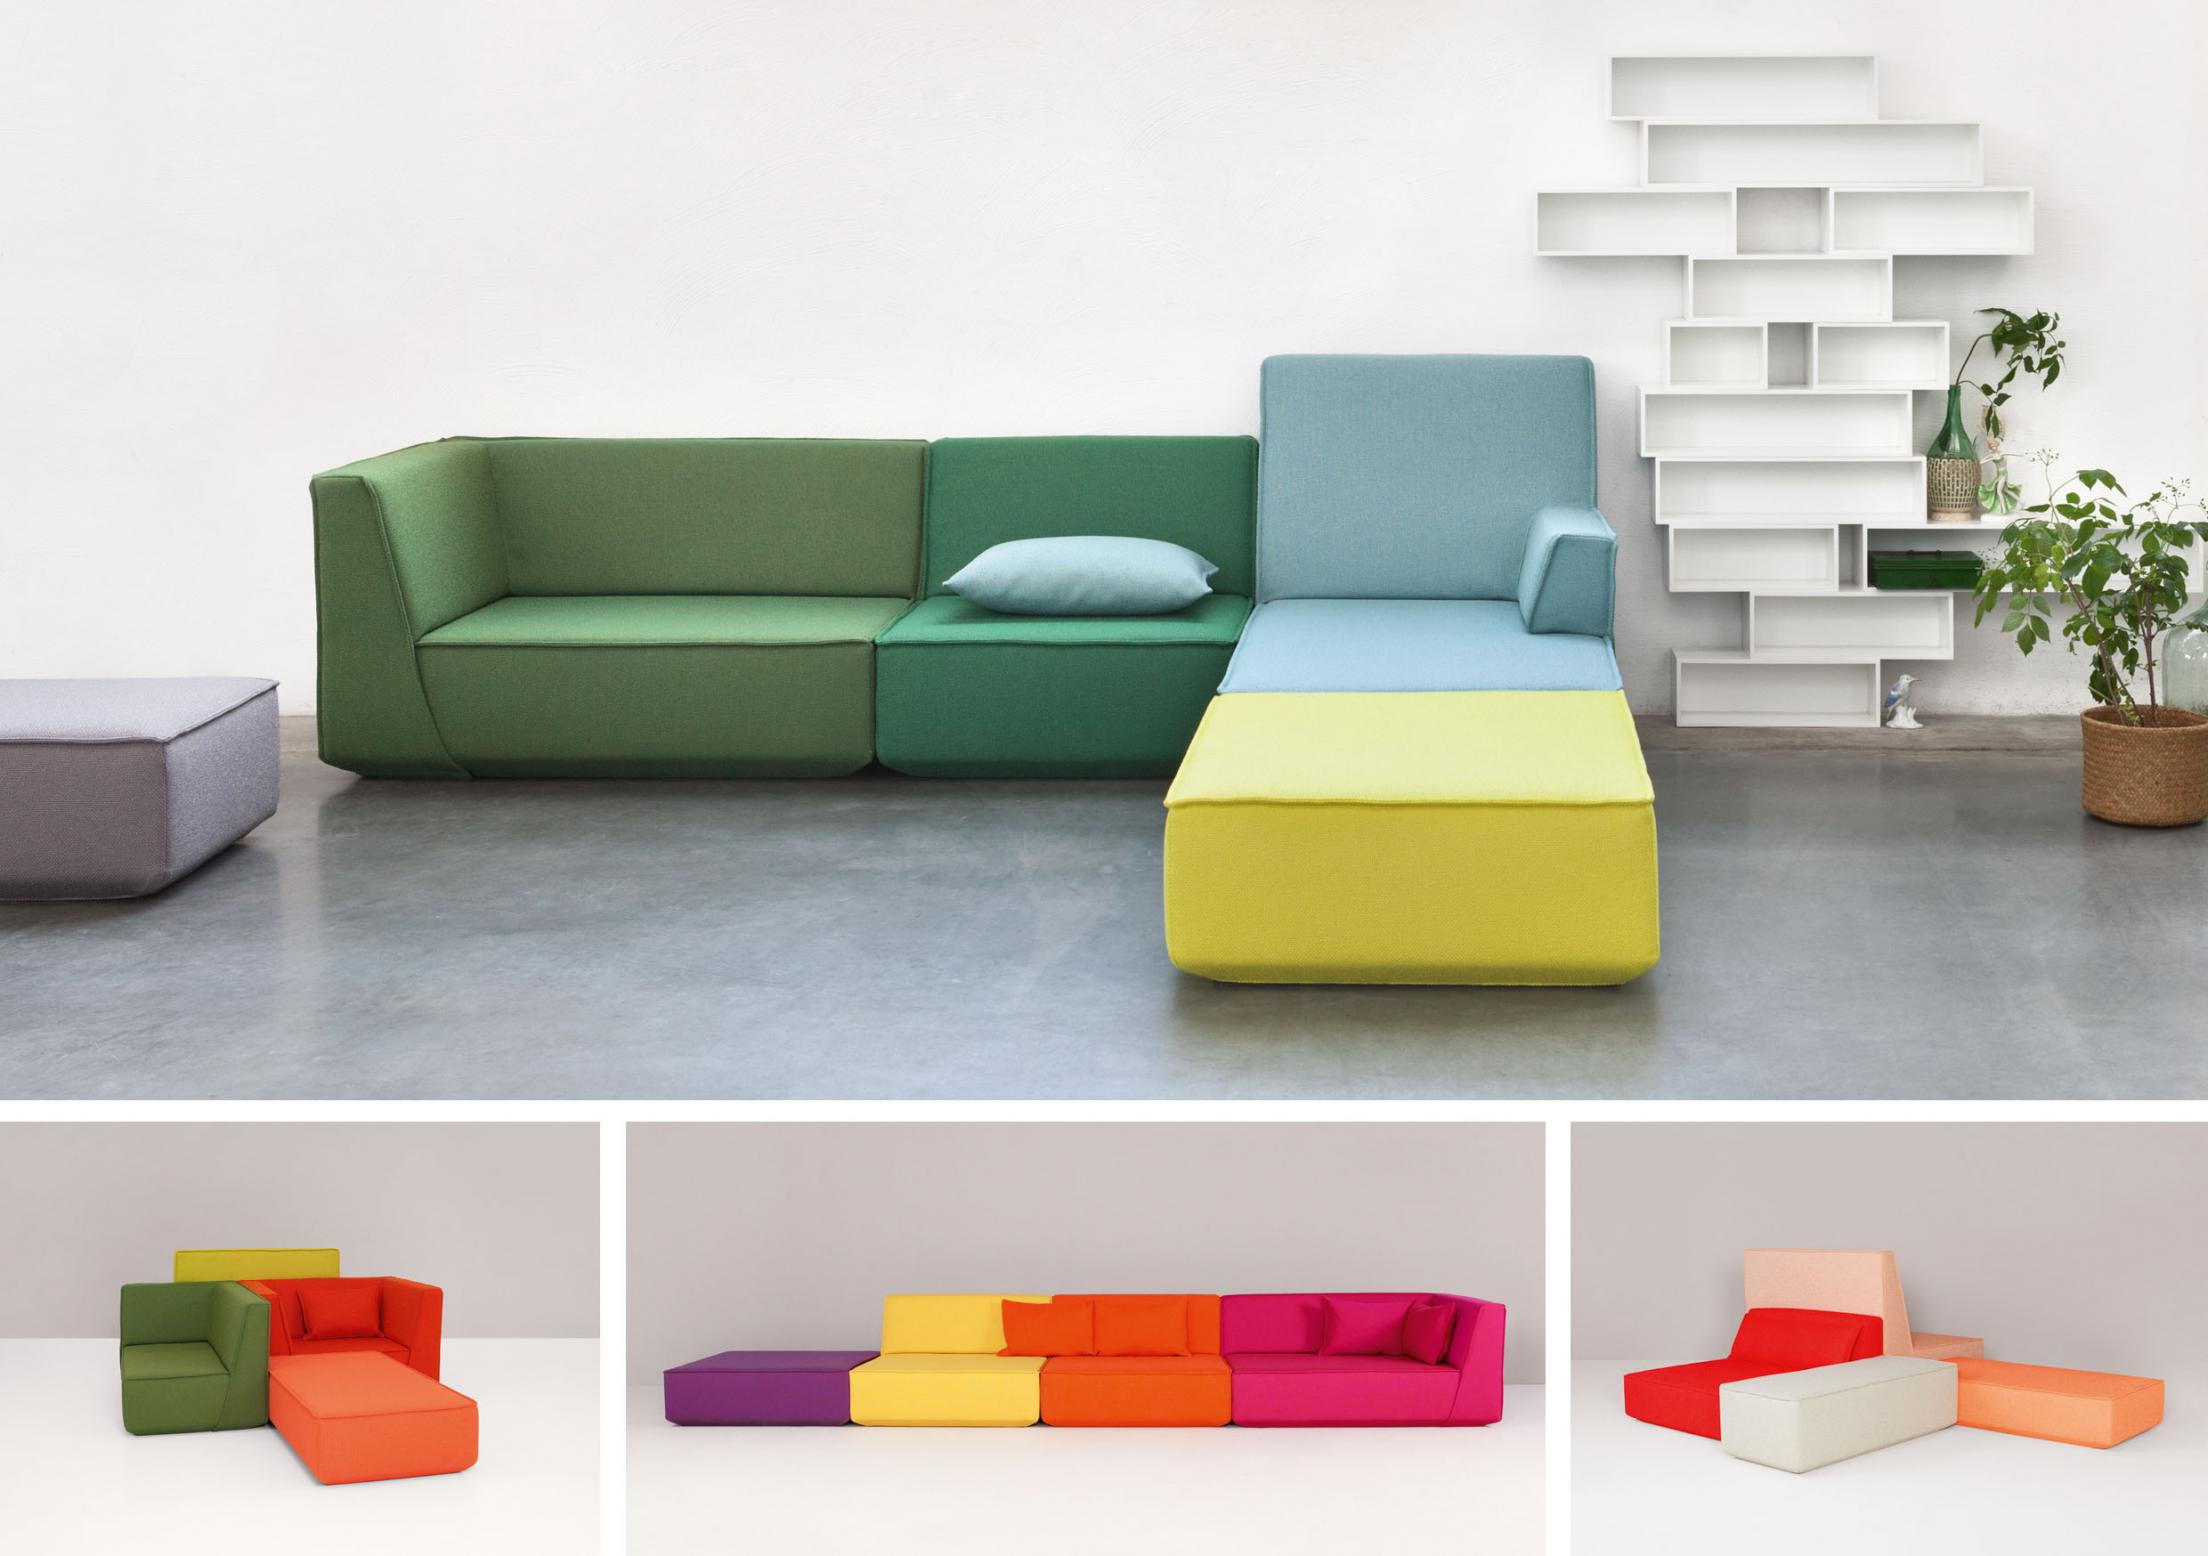 Cubit sofa modulares sofasystem special mention furniture for Sofas modulares baratos